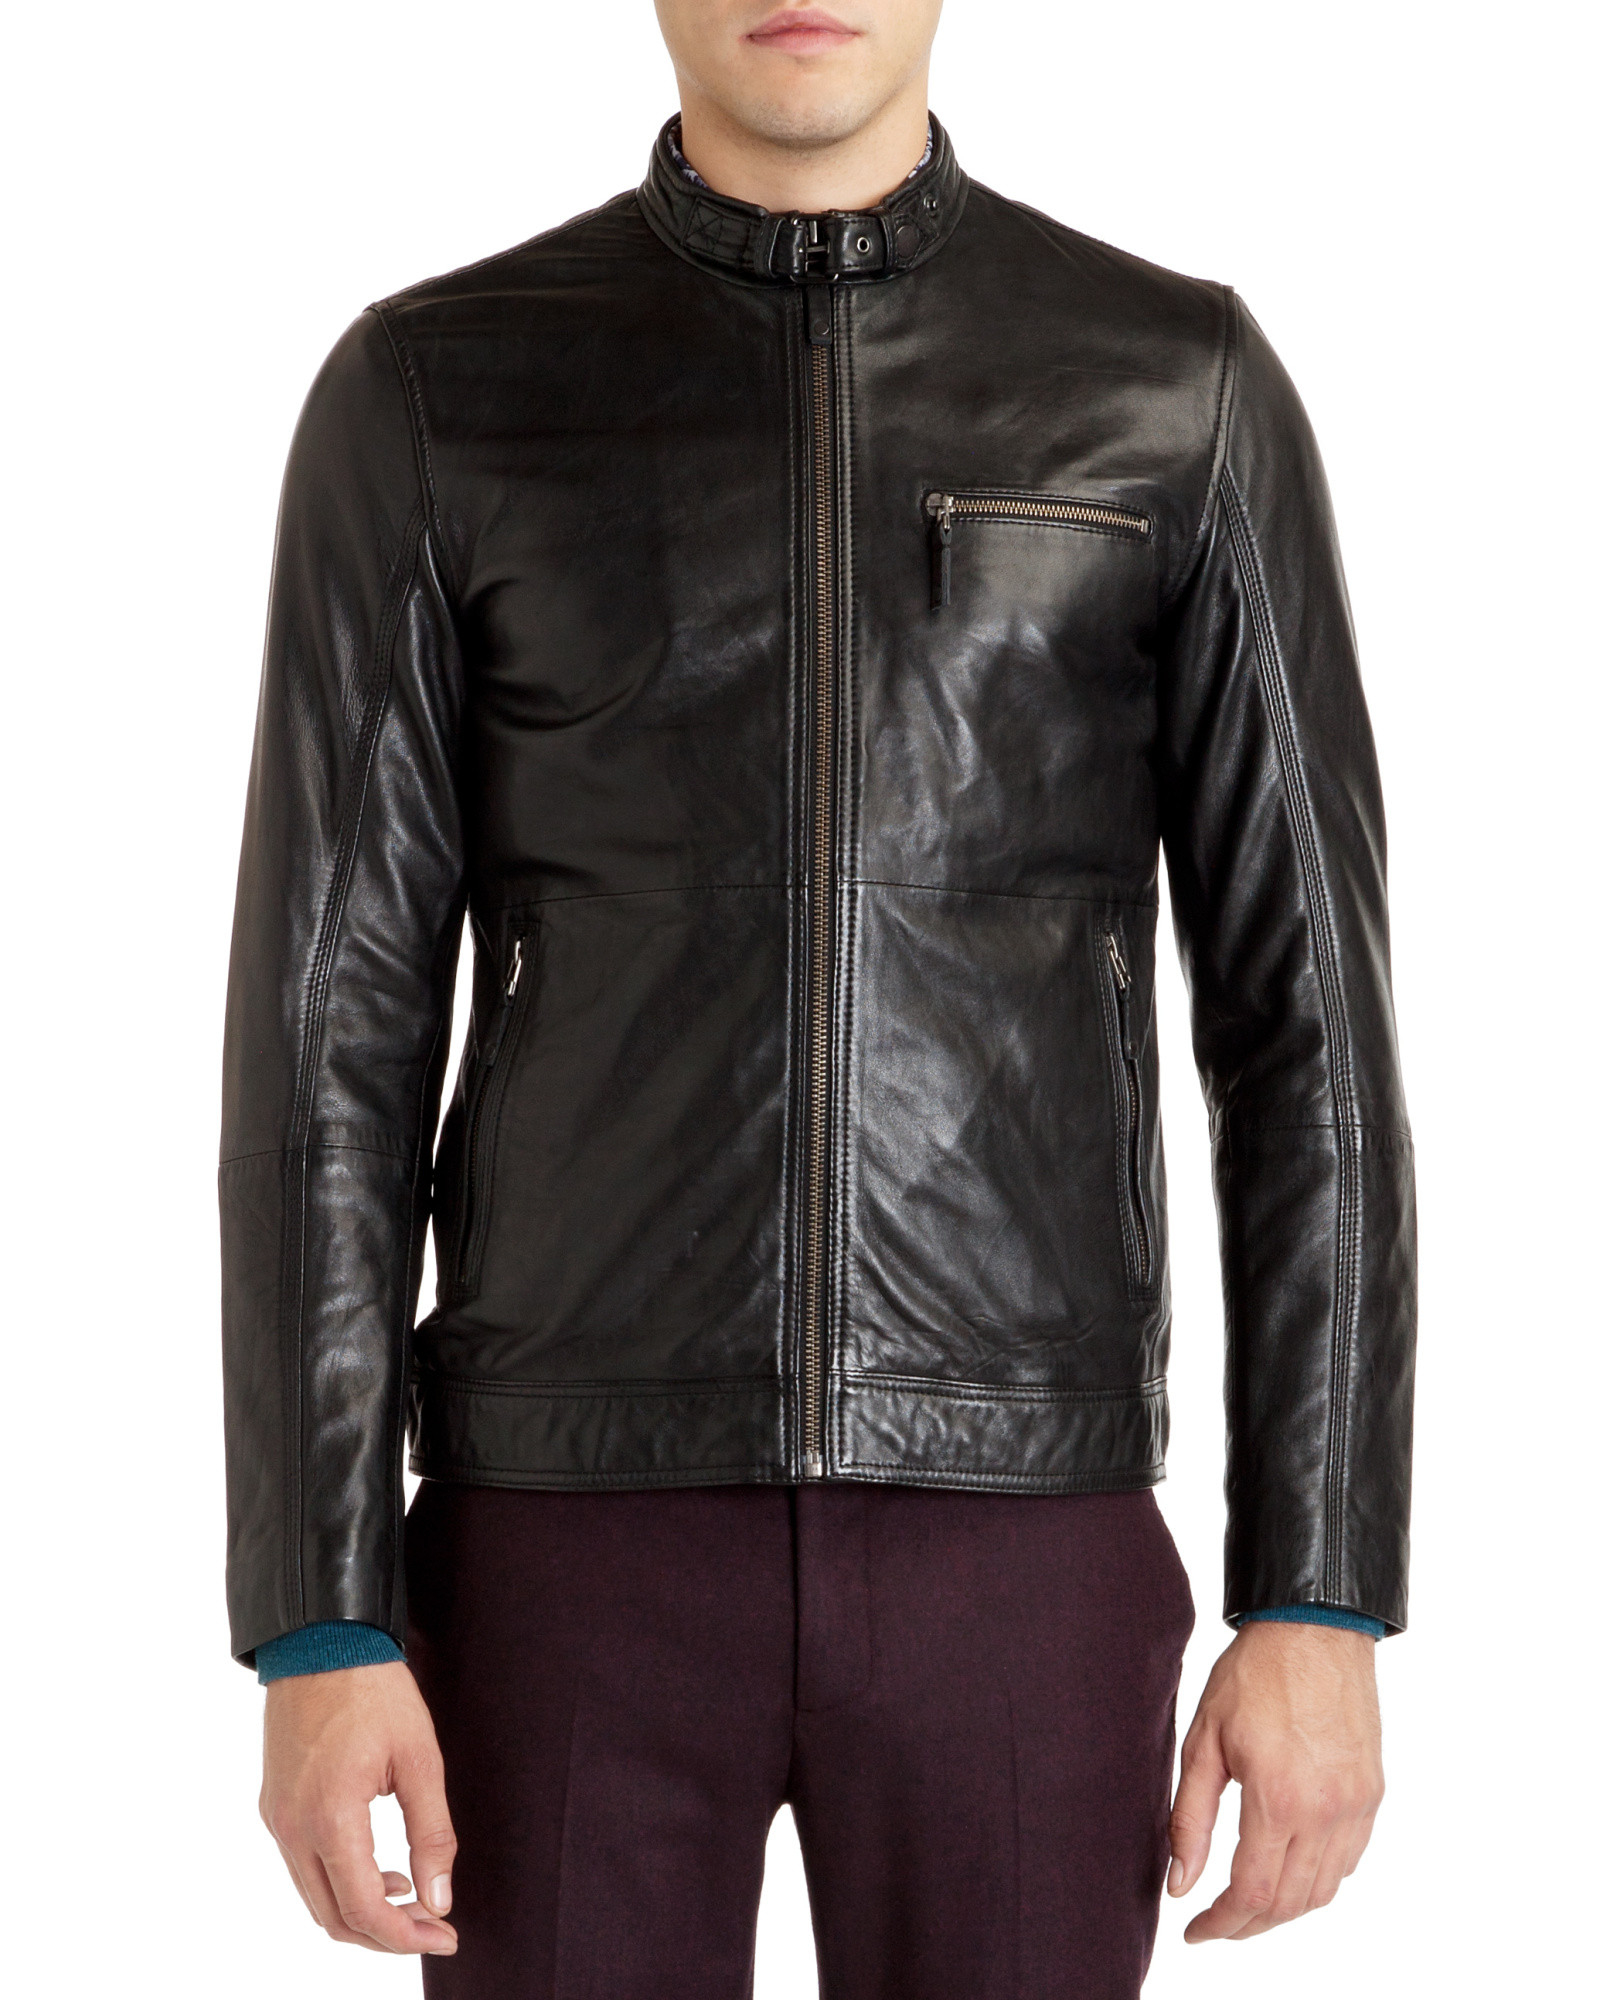 f21d80b5774778 Lyst - Ted Baker Leather Jacket in Black for Men